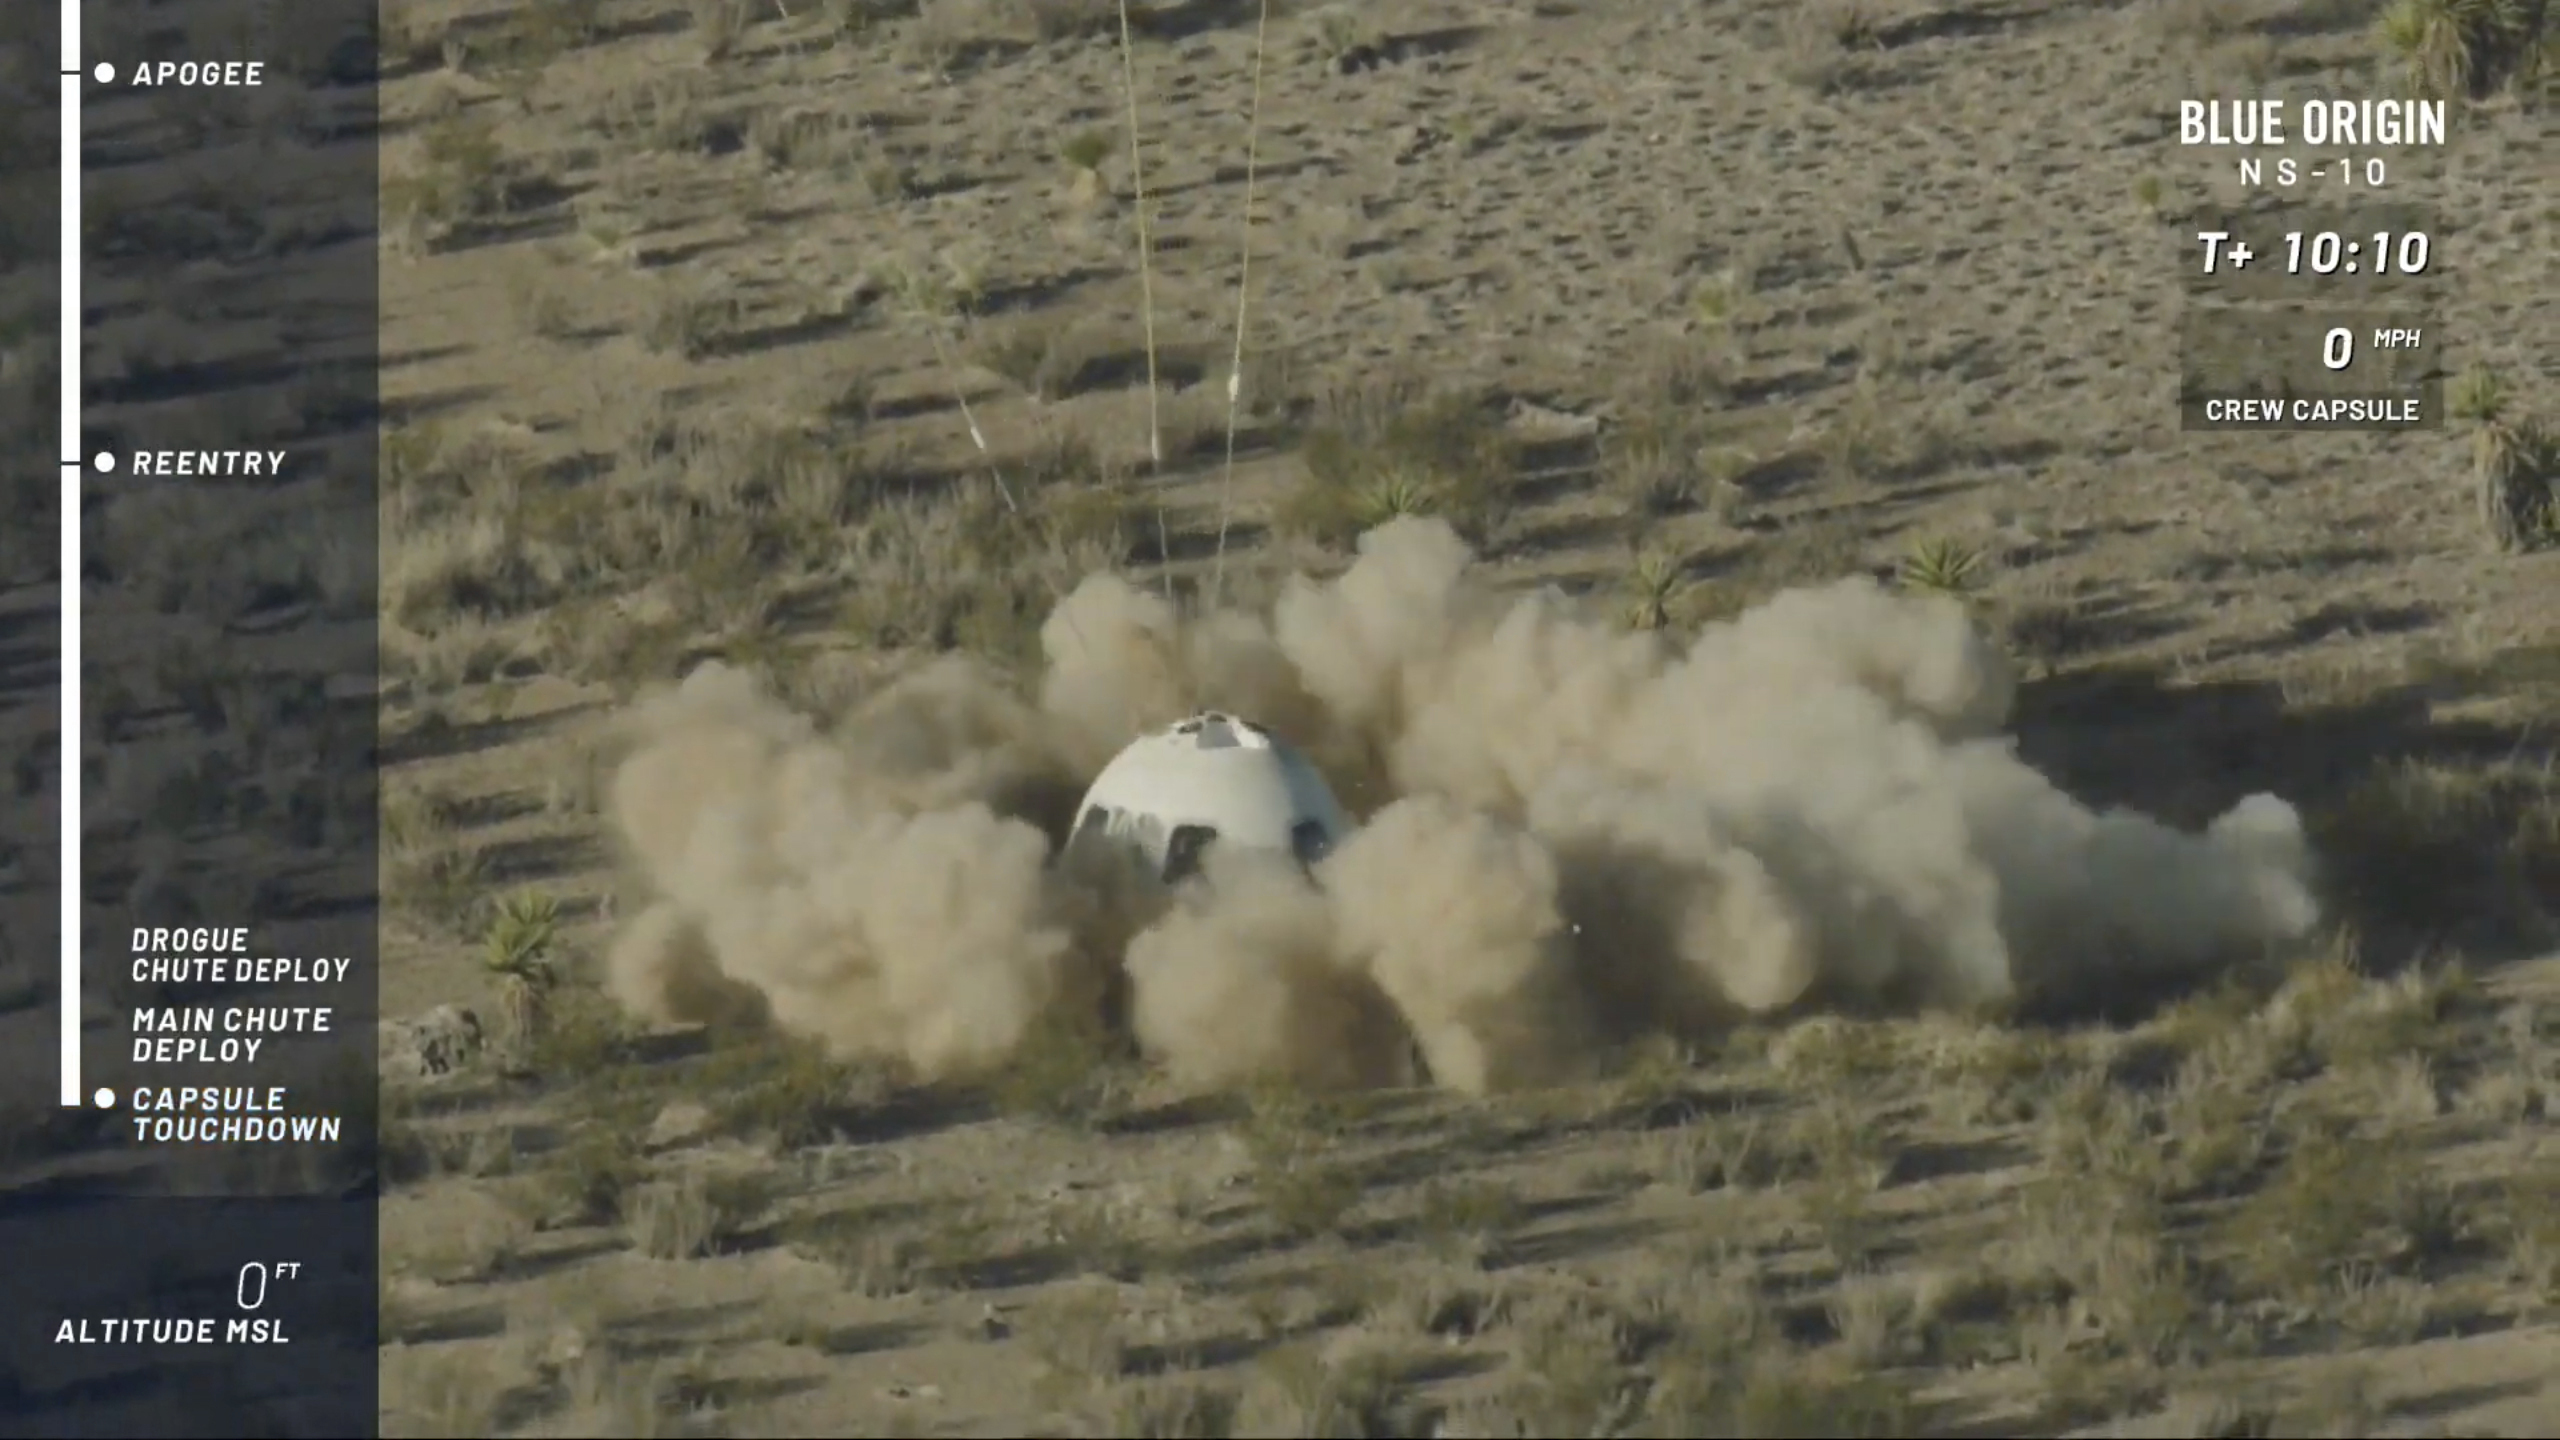 The New Shepard capsule lands at Blue Origin's site in west Texas